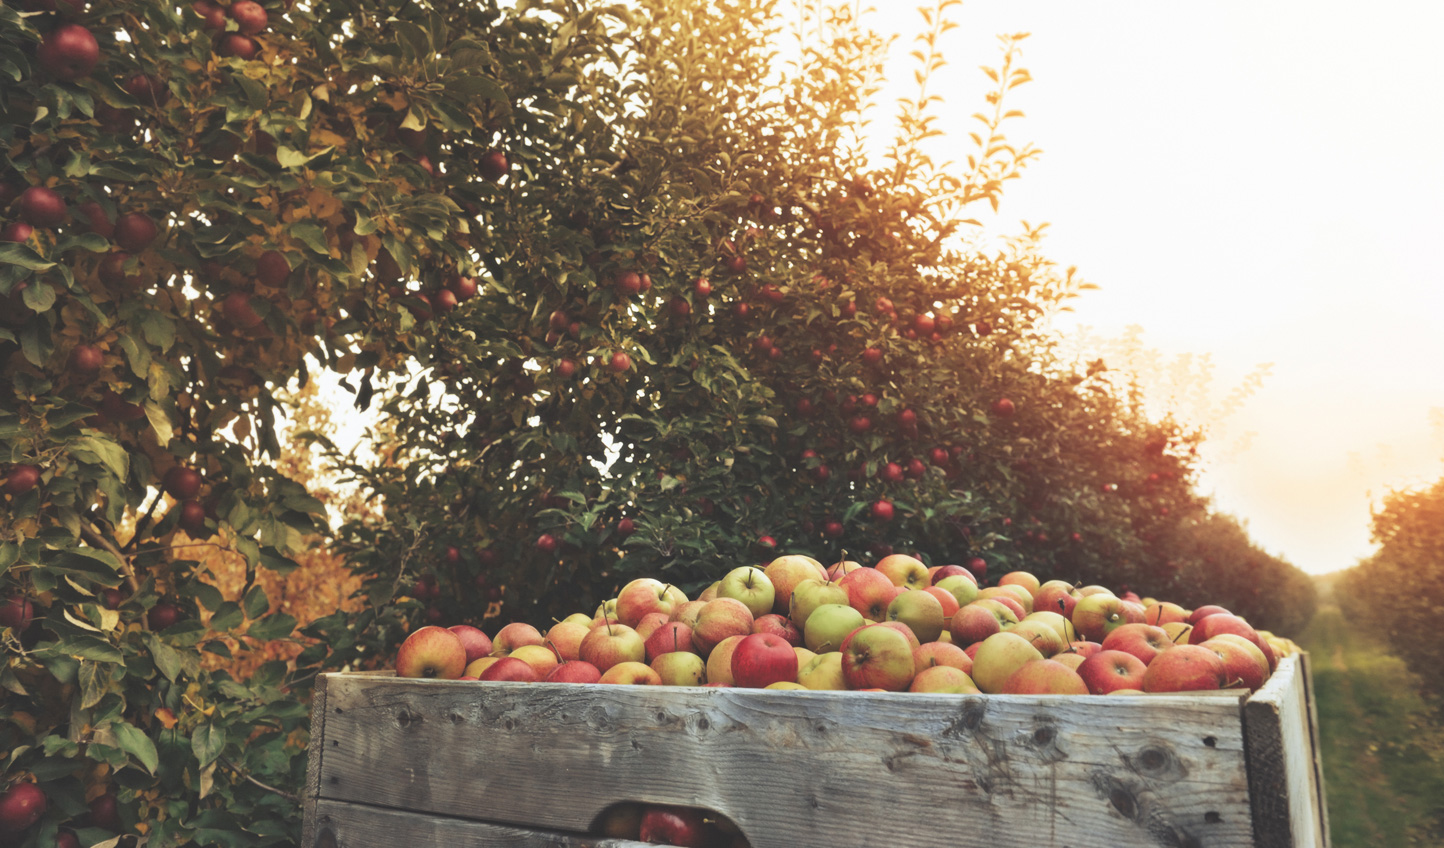 Gather local produce from an orchard for an exclusive cooking lesson